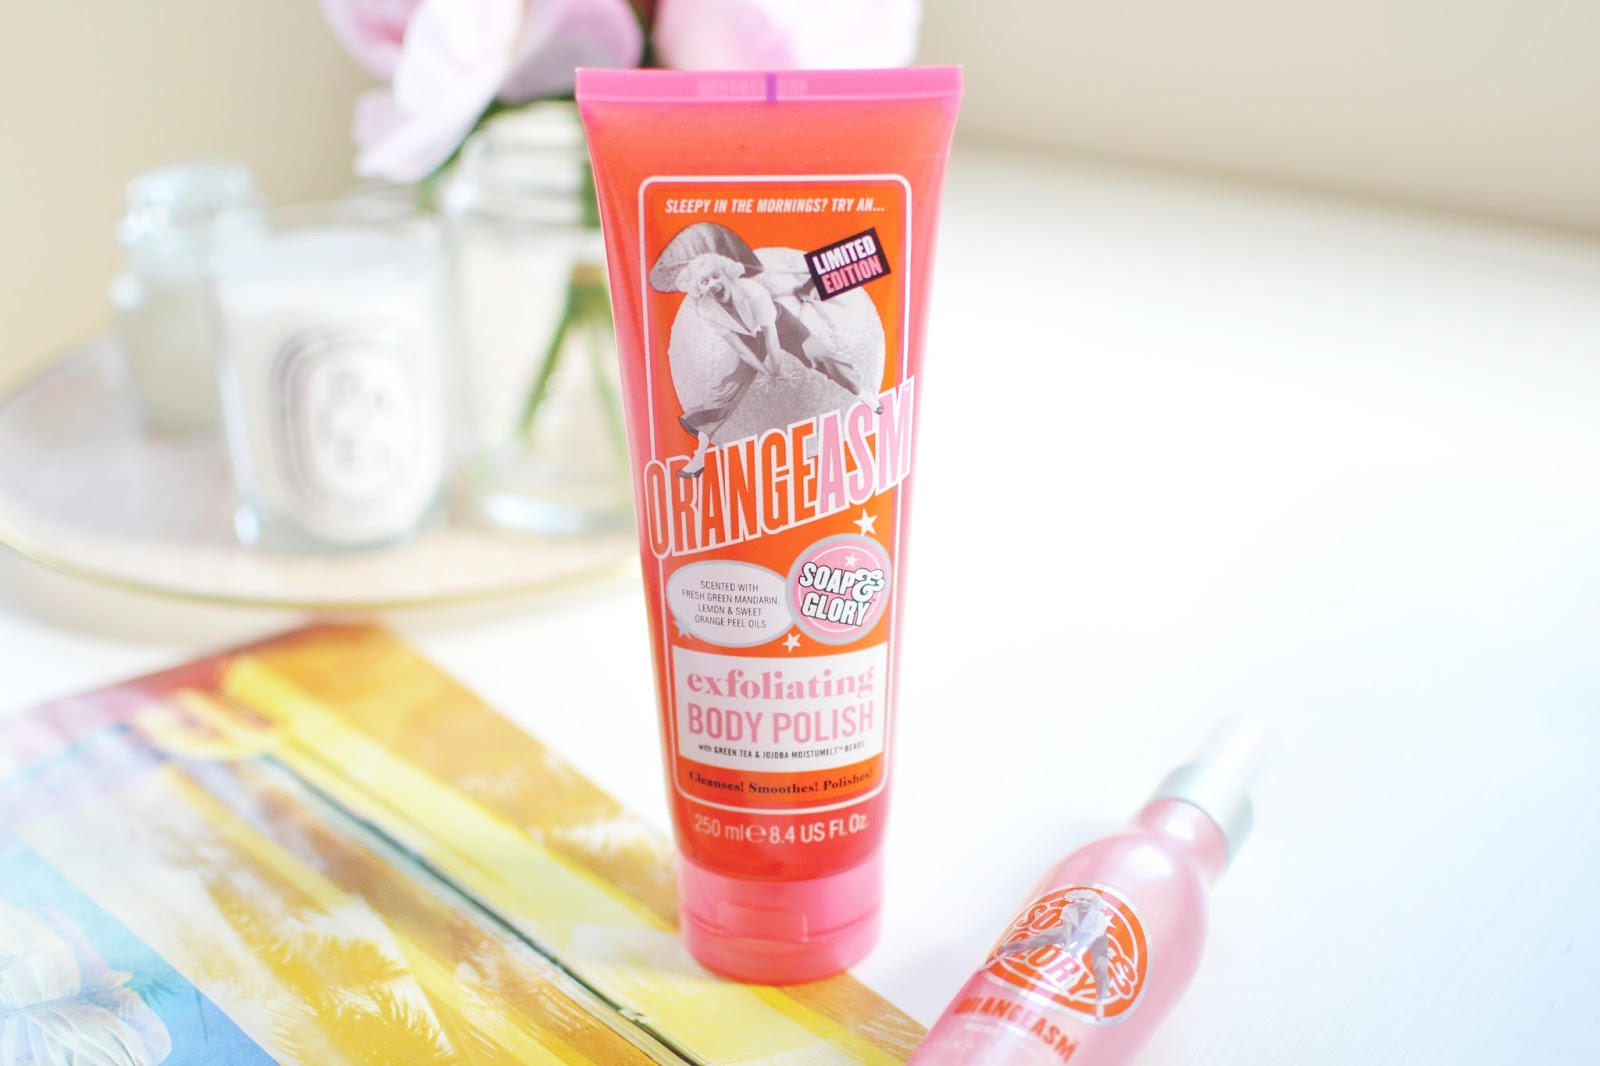 Soap&Glory Orangeasm Exfoliating Body Polish